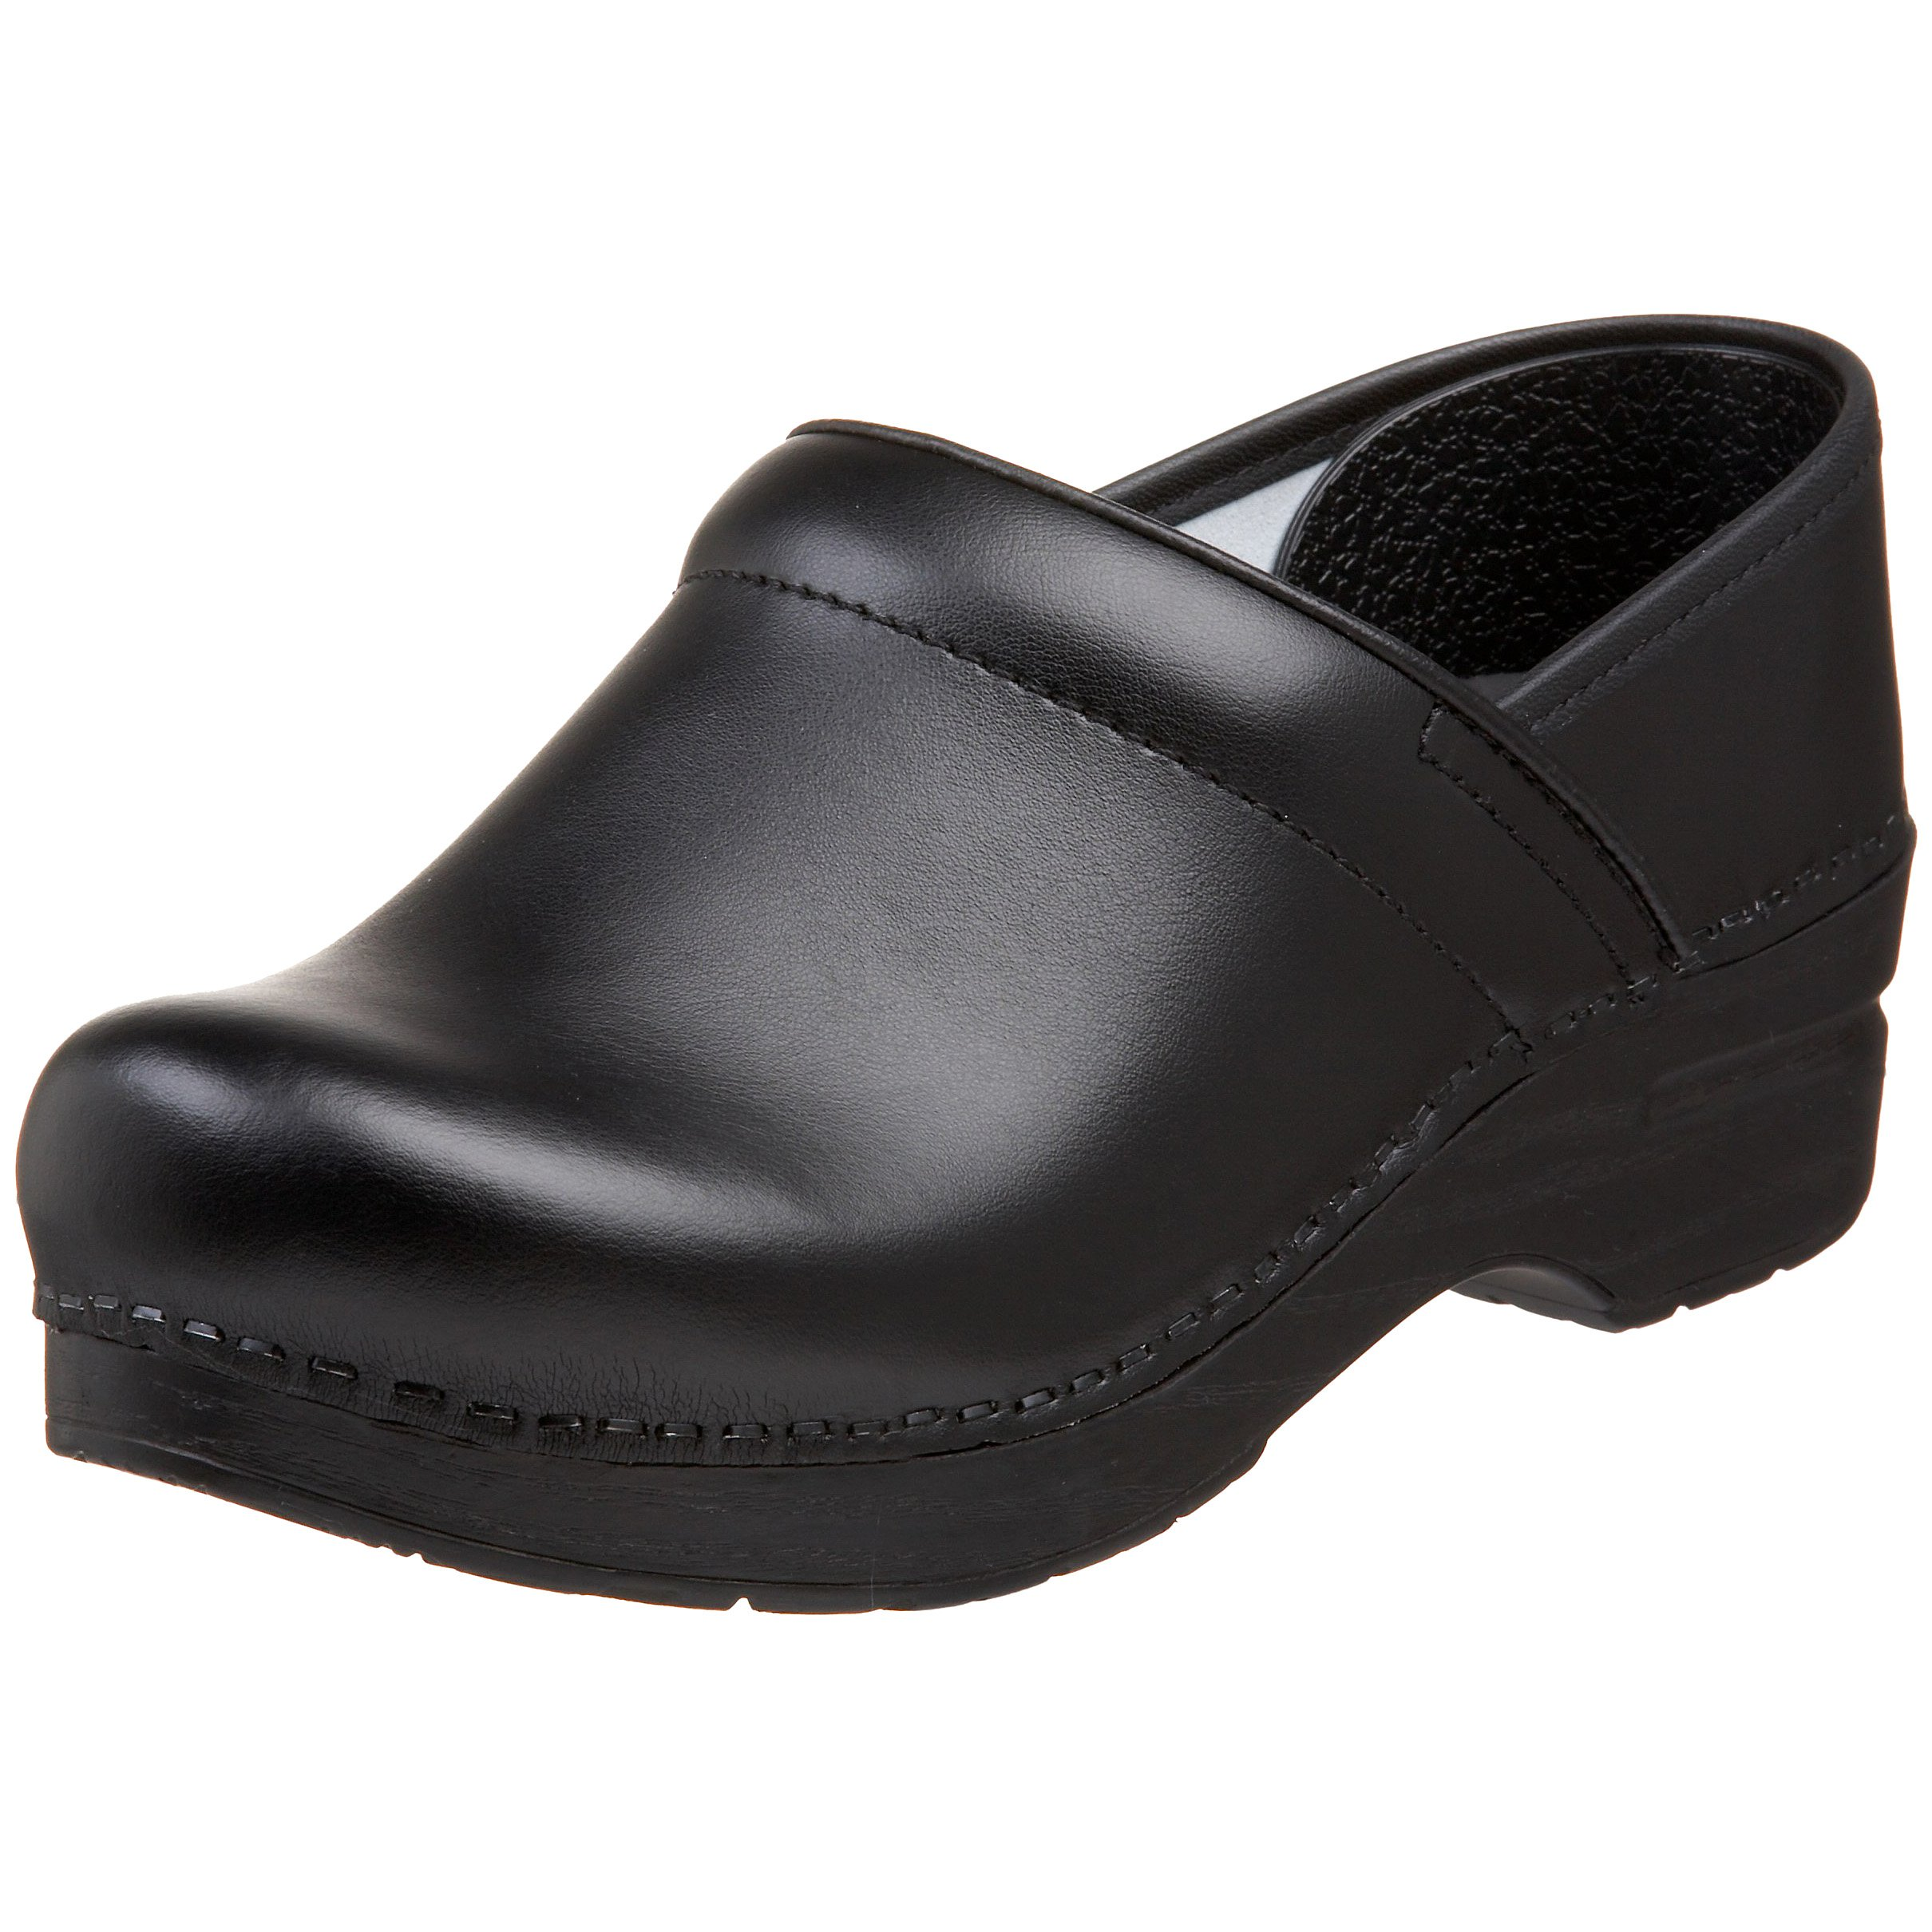 Dansko Women's Wide Professional Clog,Black Box,38 W EU / 7.5-8 D(W) US by Dansko (Image #1)